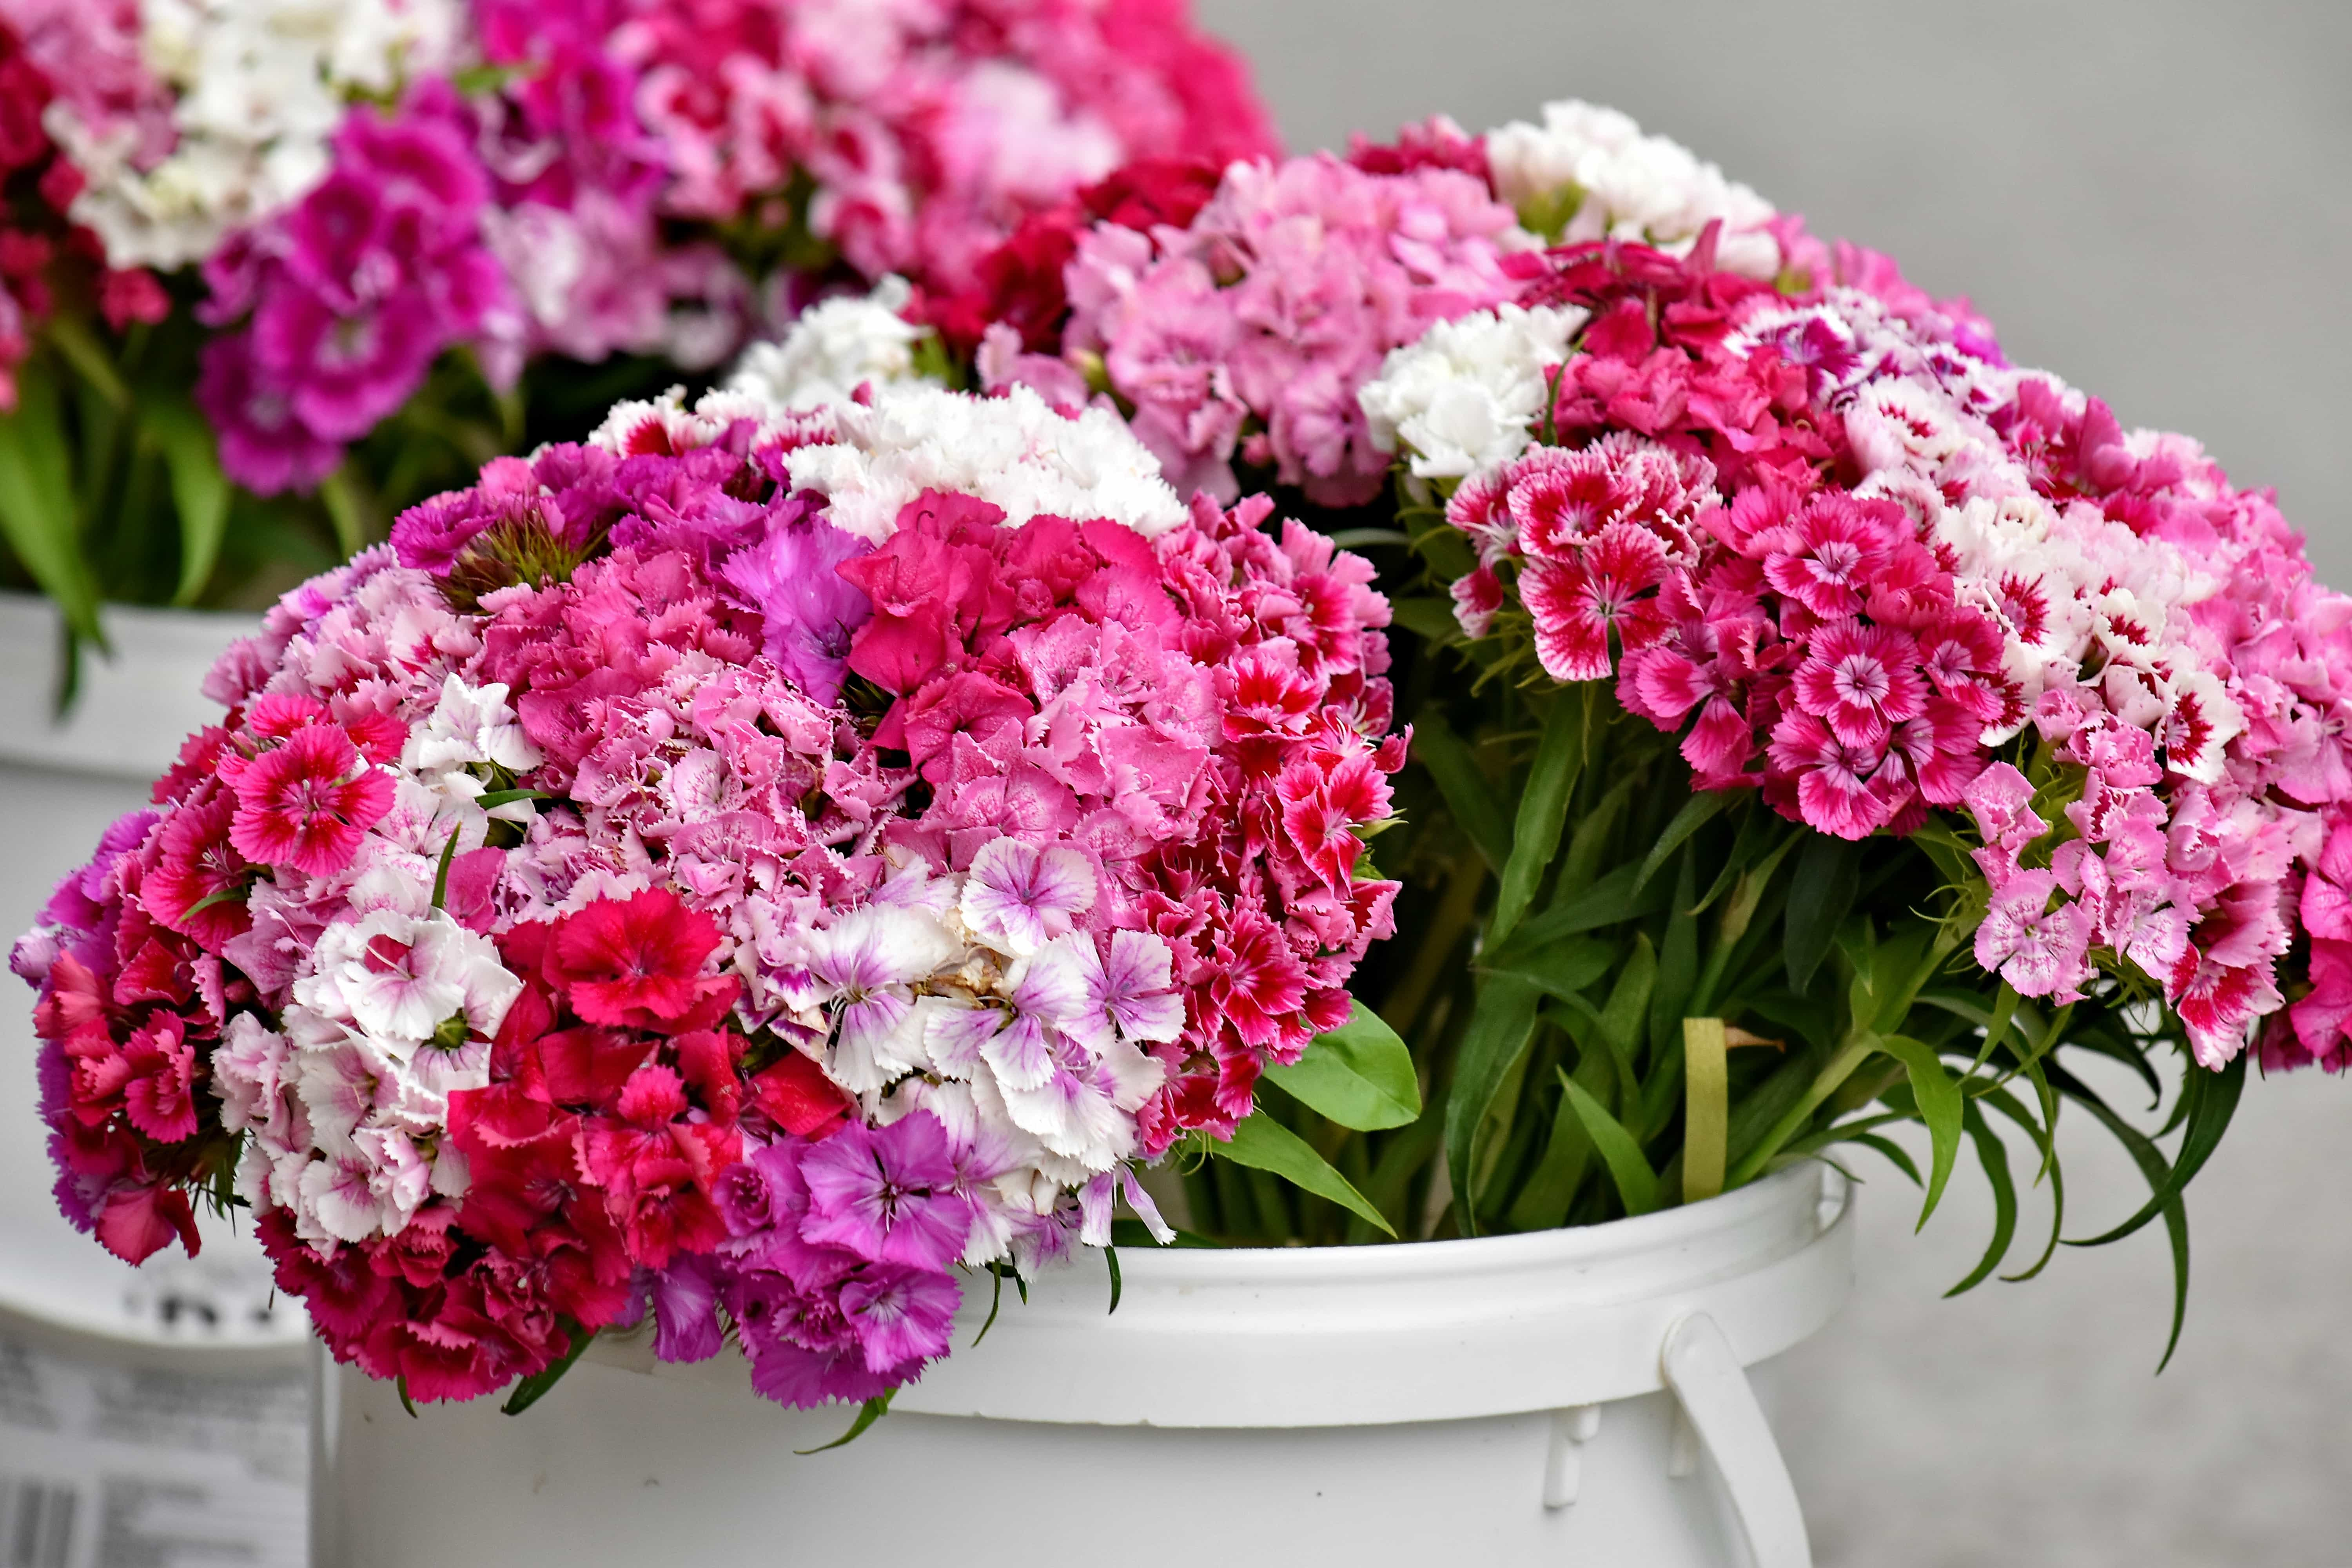 Free Picture Bucket Carnation Cluster Outdoors Pinkish Flora Summer Petal Bouquet Blooming